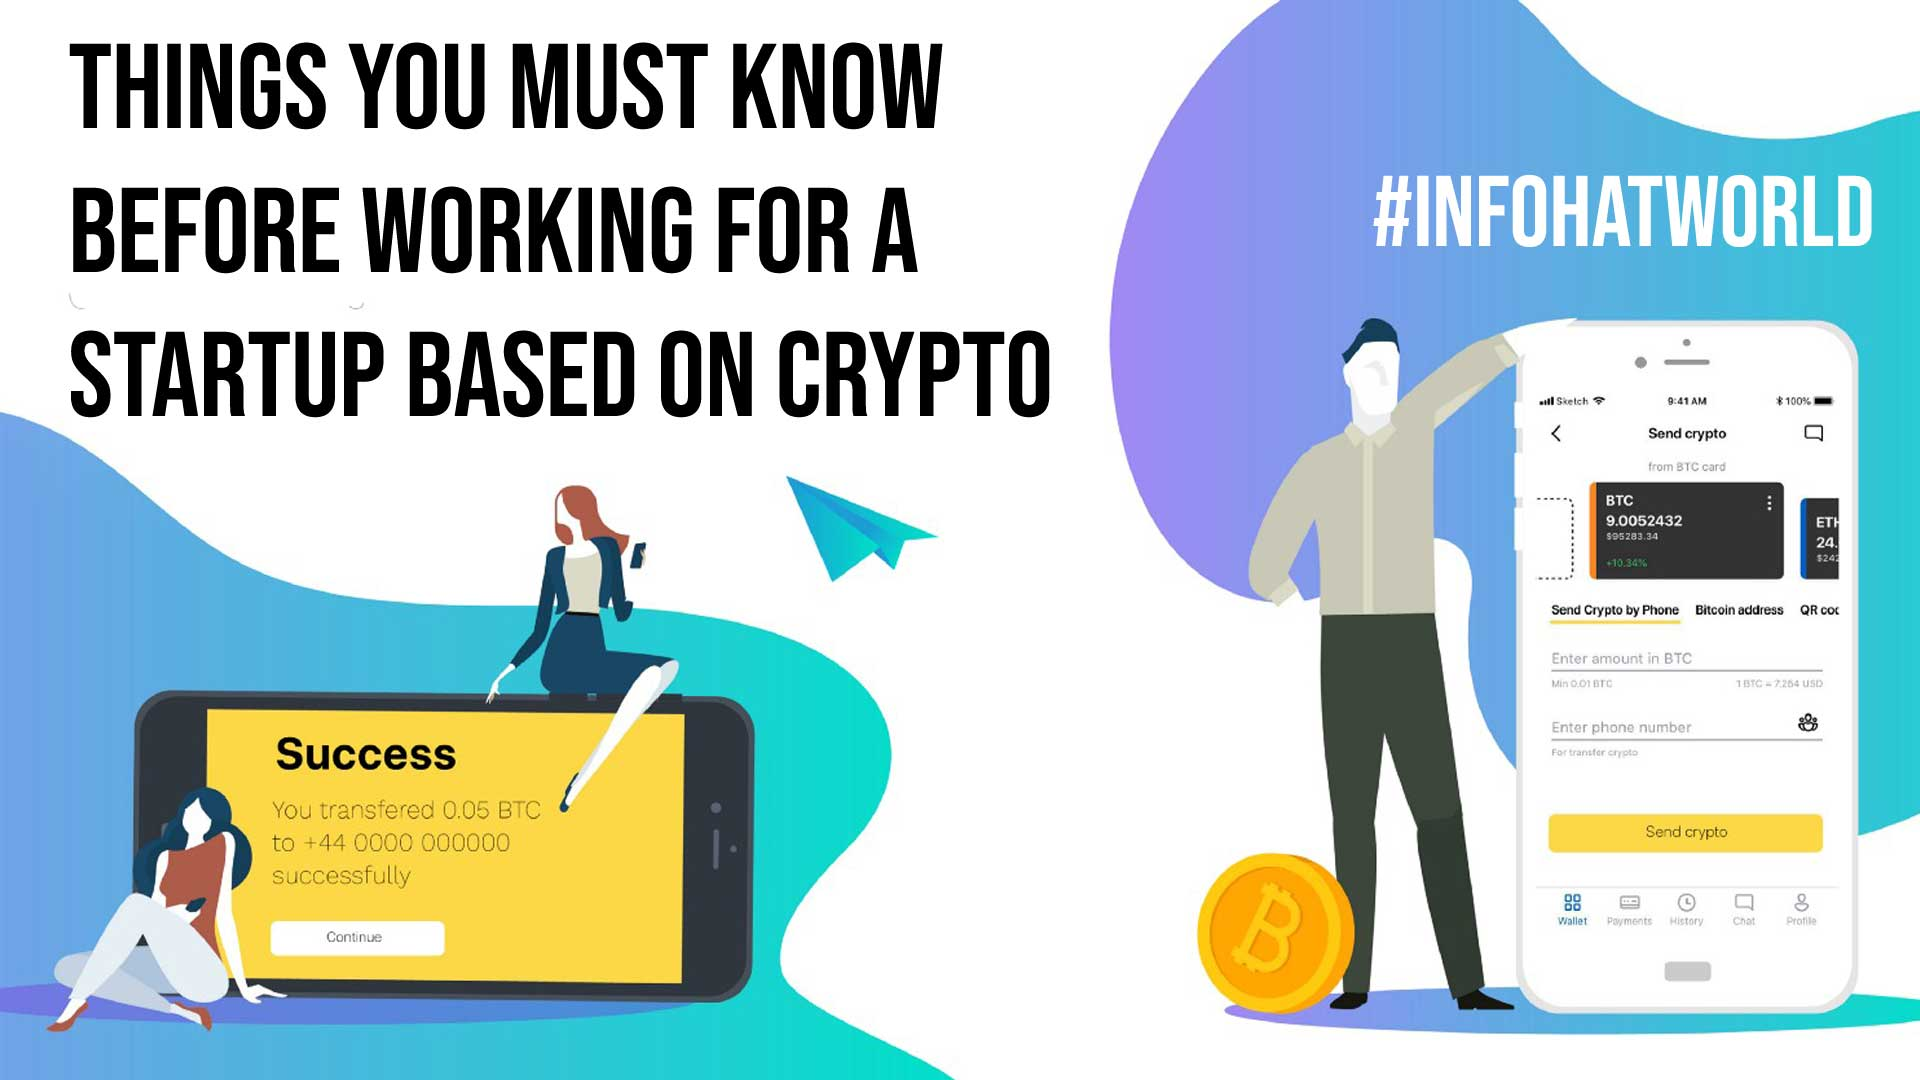 Things You Must Know Before Working for a Startup based on Crypto